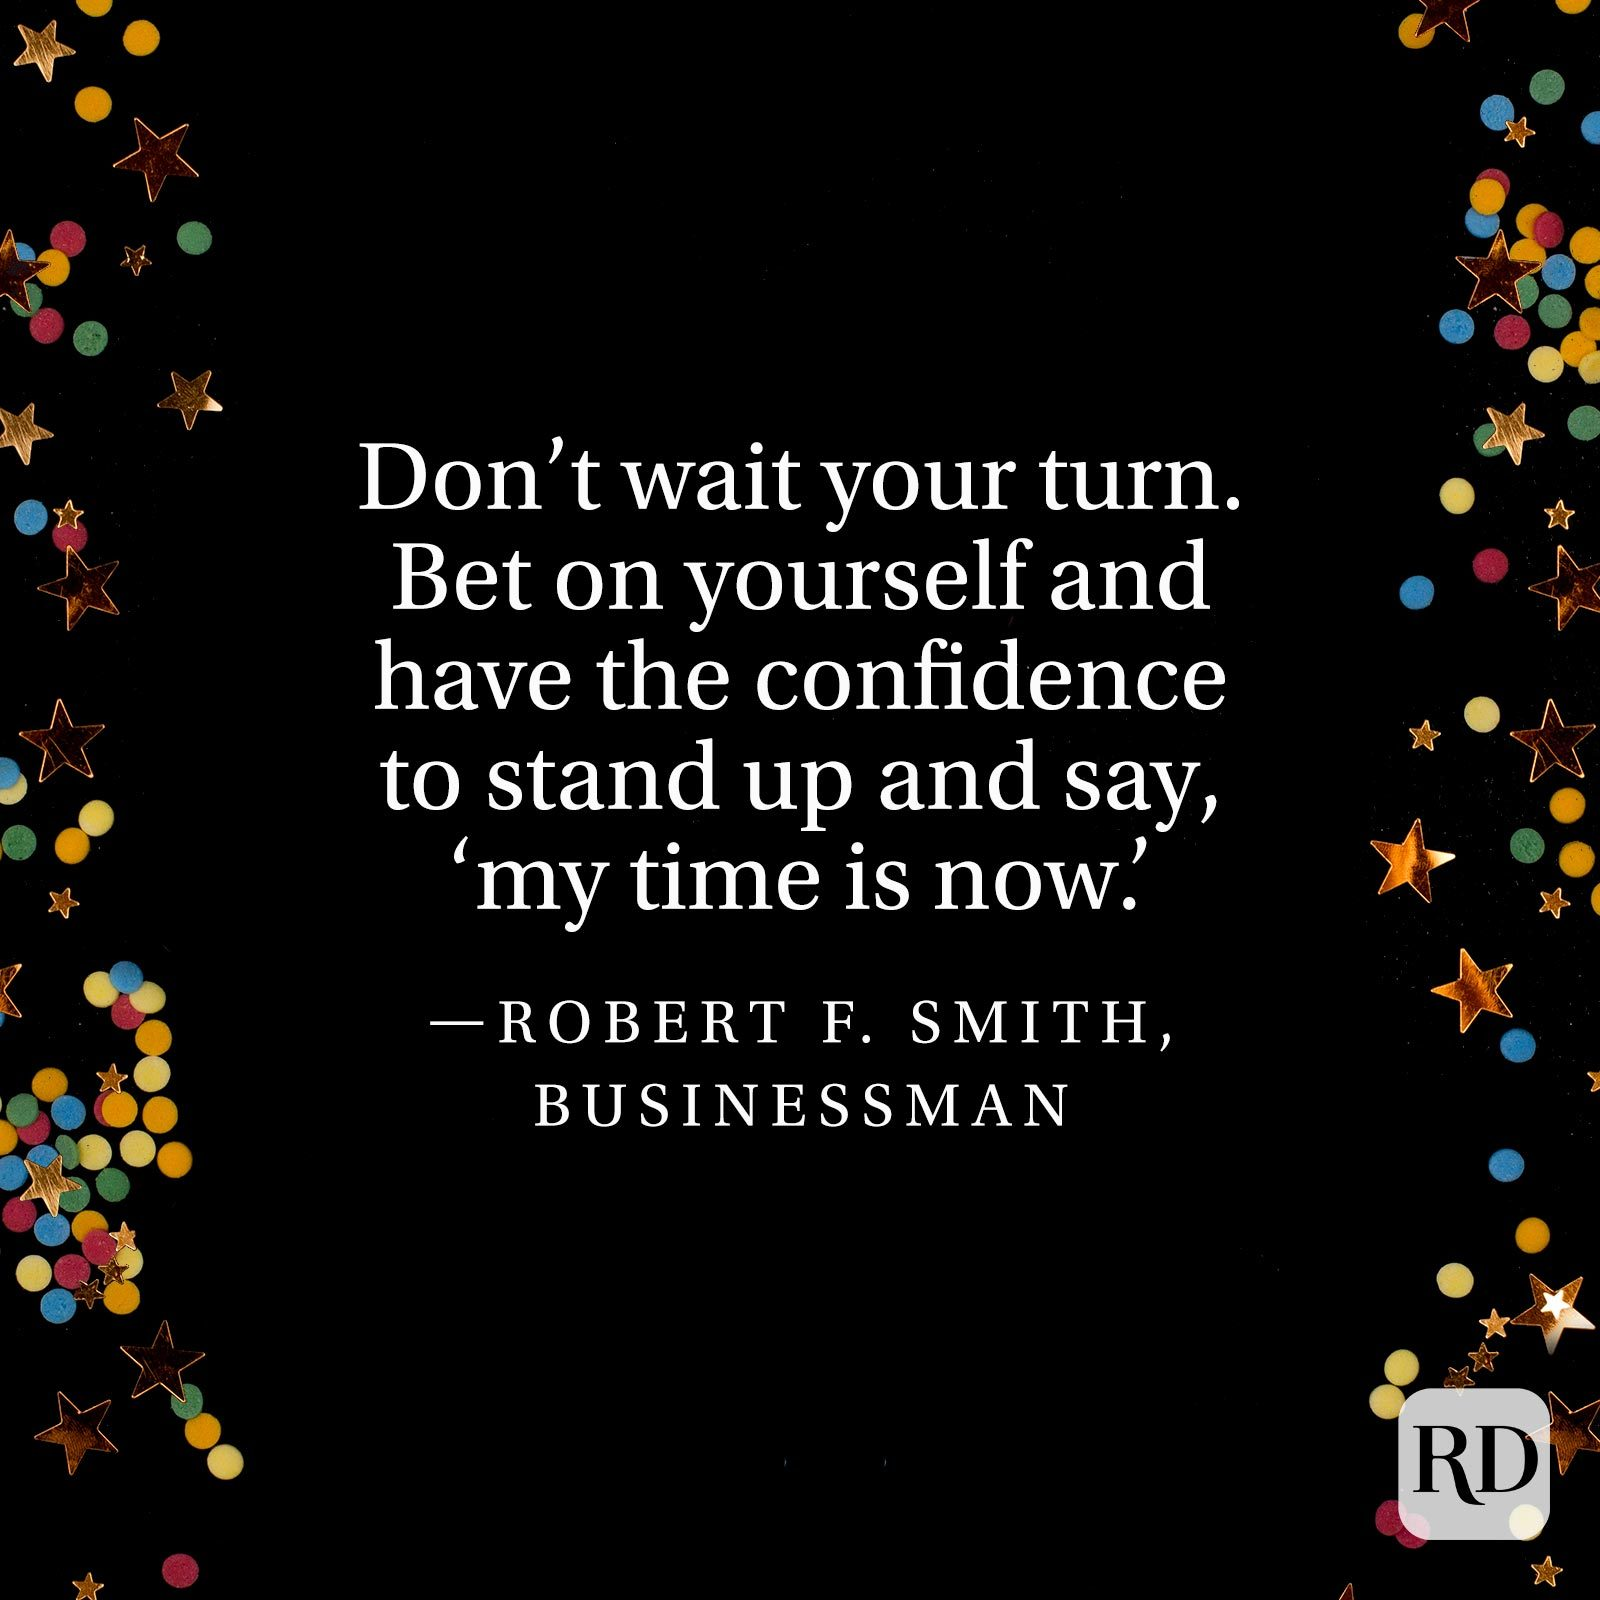 """Don't wait your turn. Bet on yourself and have the confidence to stand up and say, 'my time is now.'"" —Robert F. Smith, businessman"